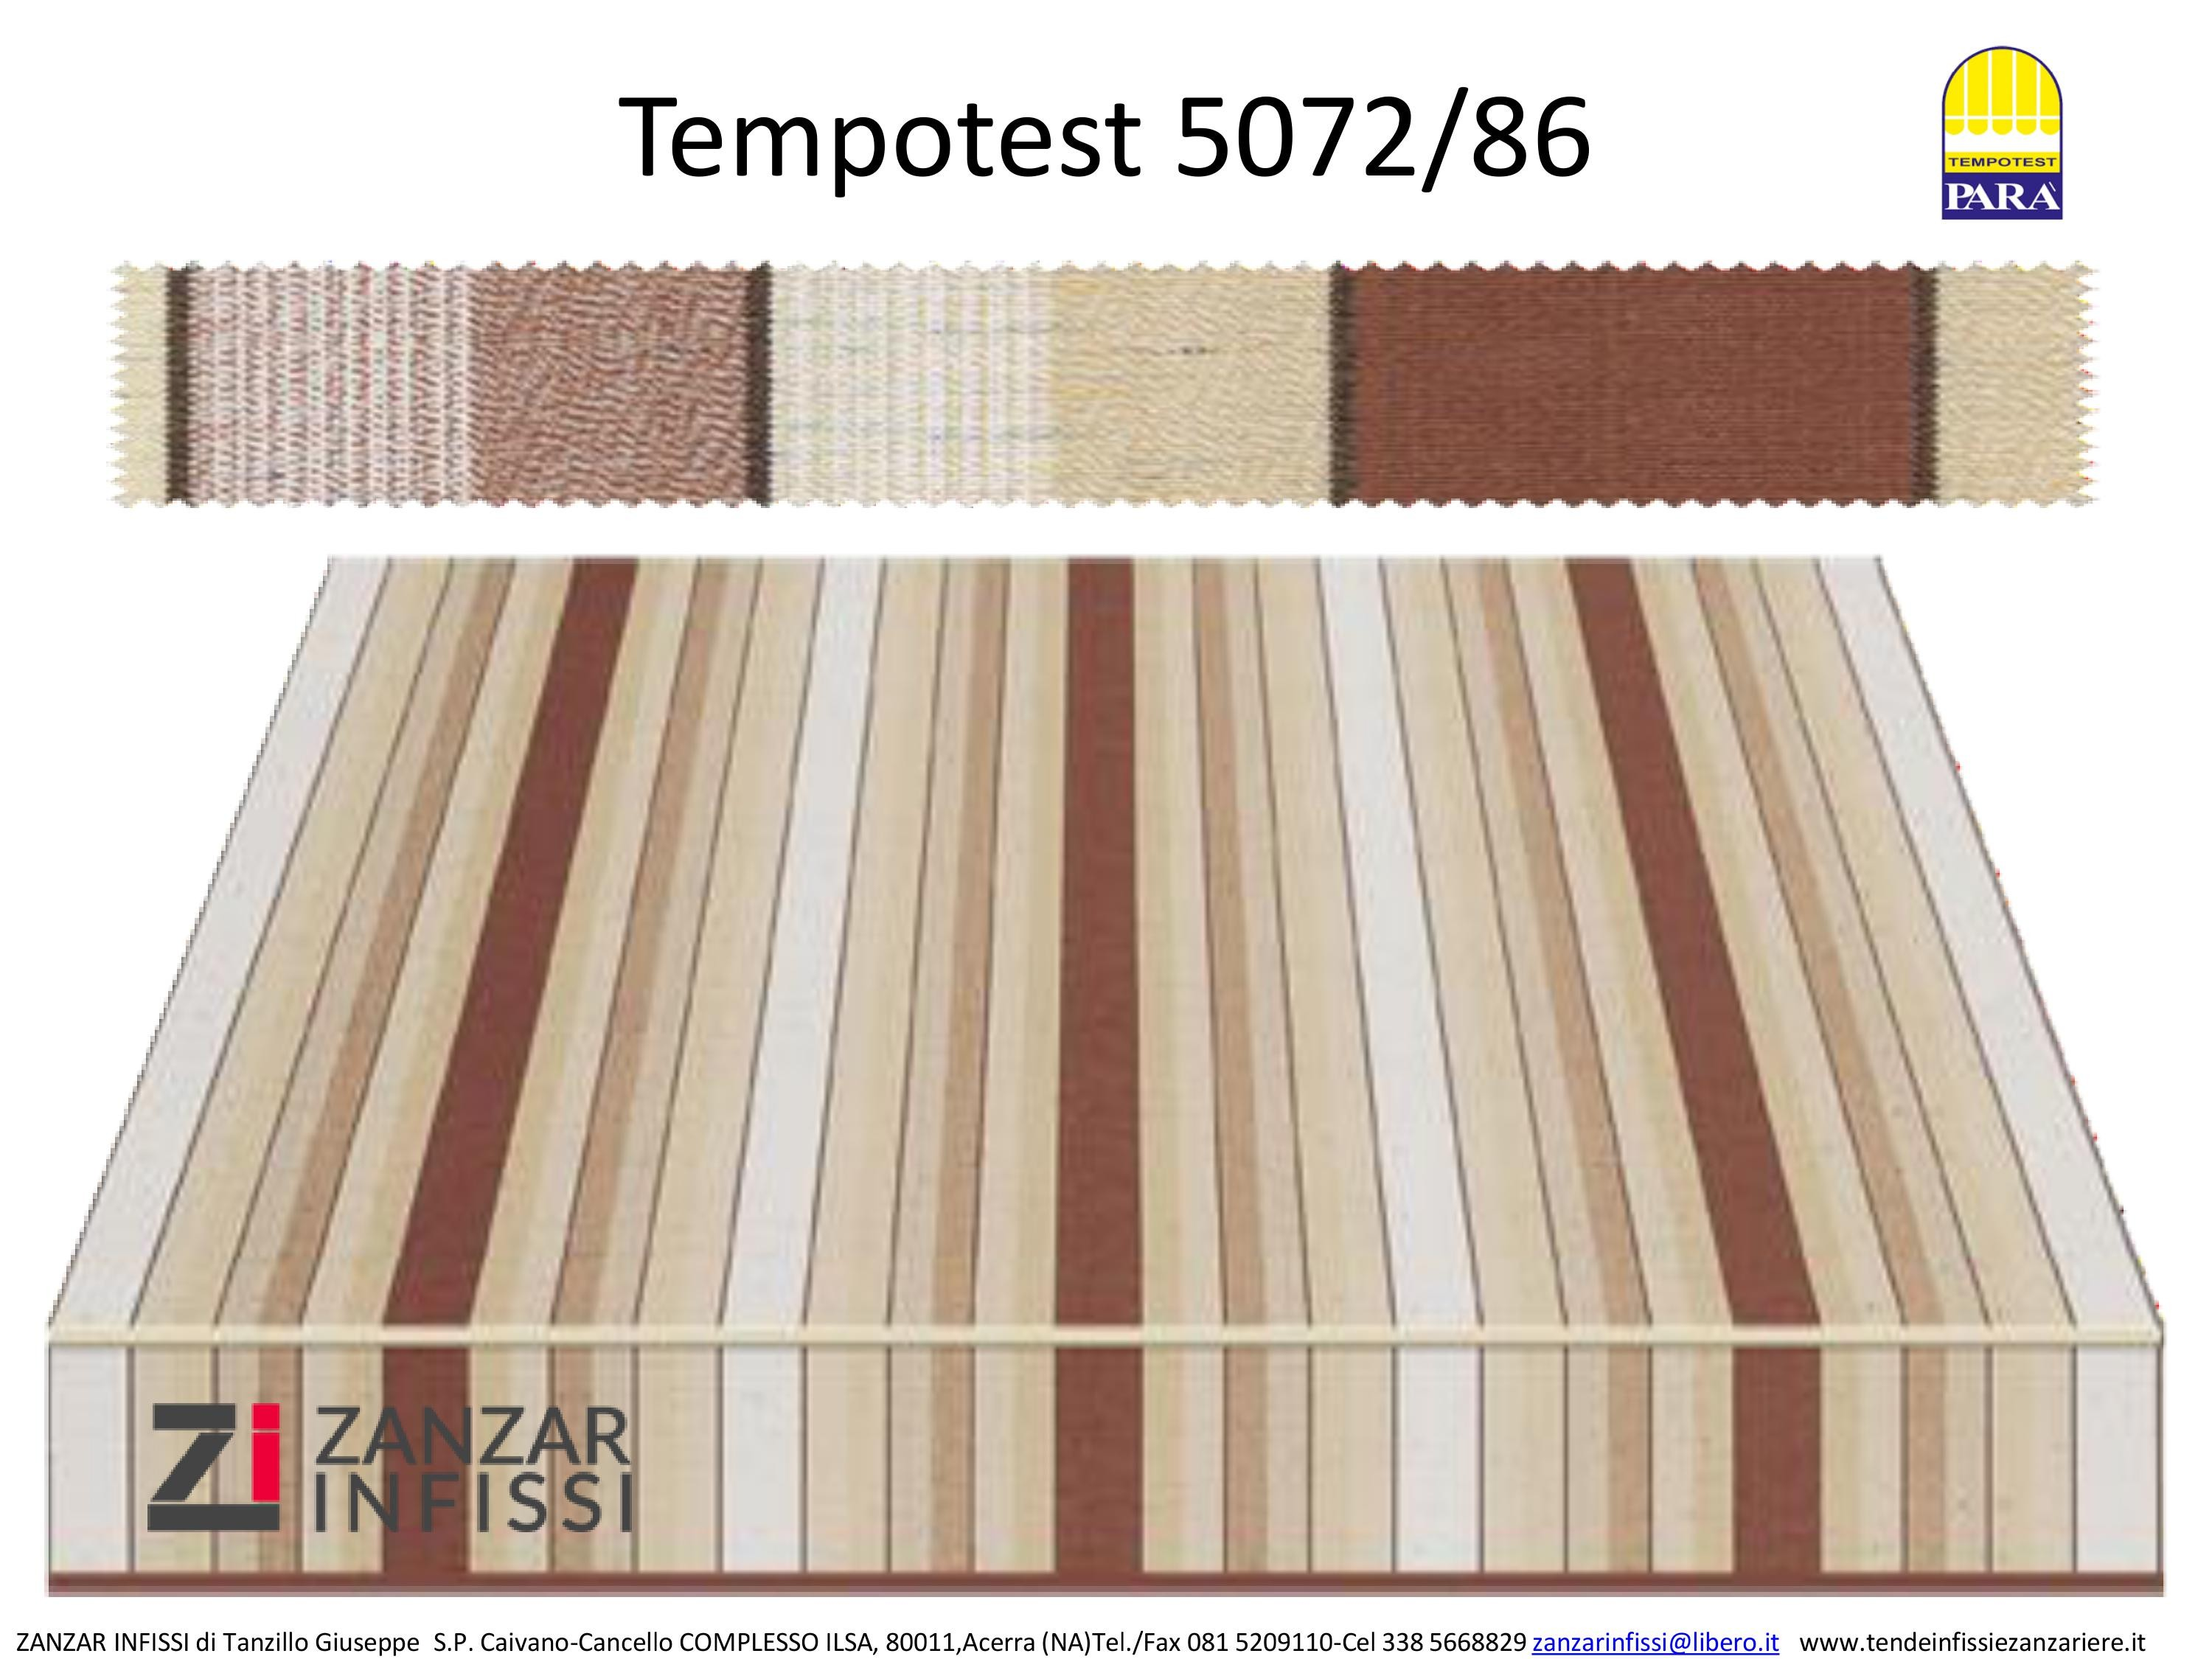 Tempotest 5072/86